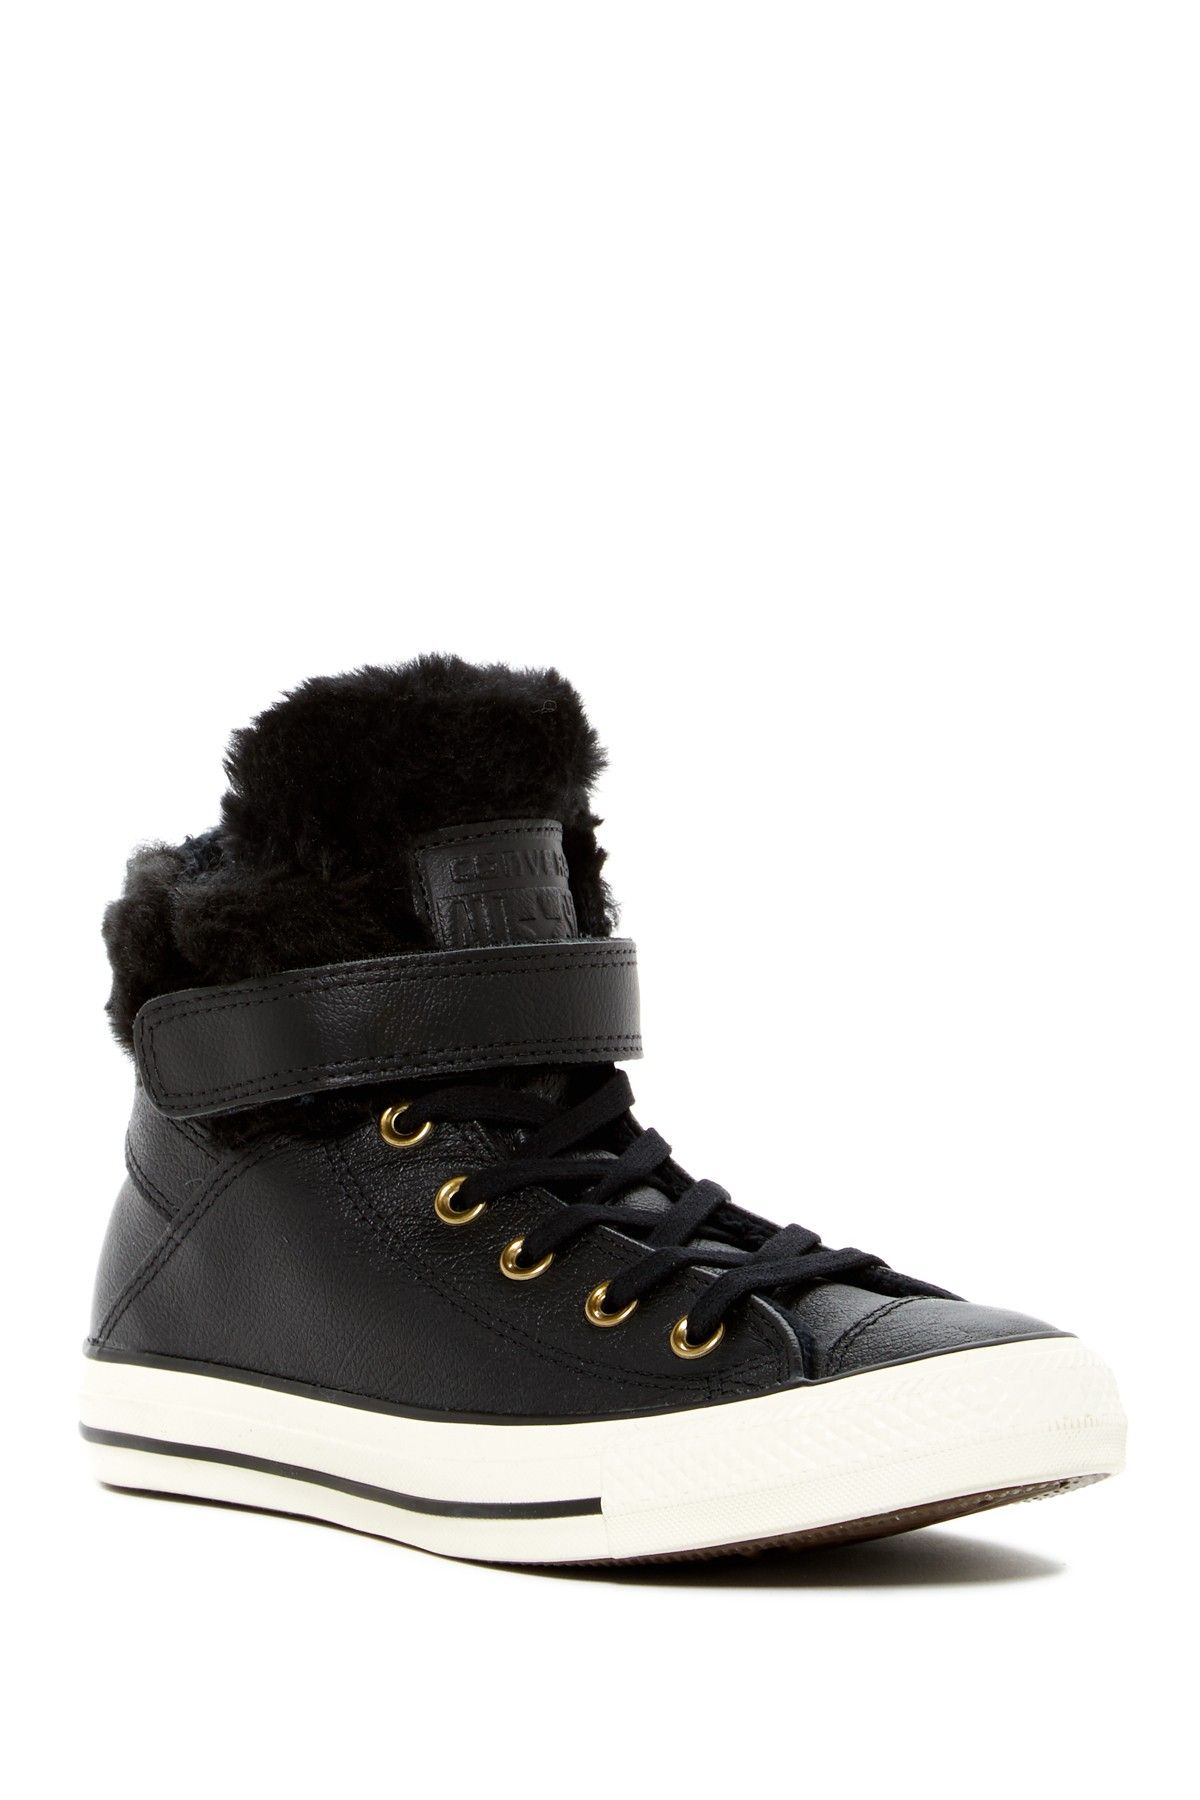 Converse | Chuck Taylor All Star Faux Fur Lined Leather High